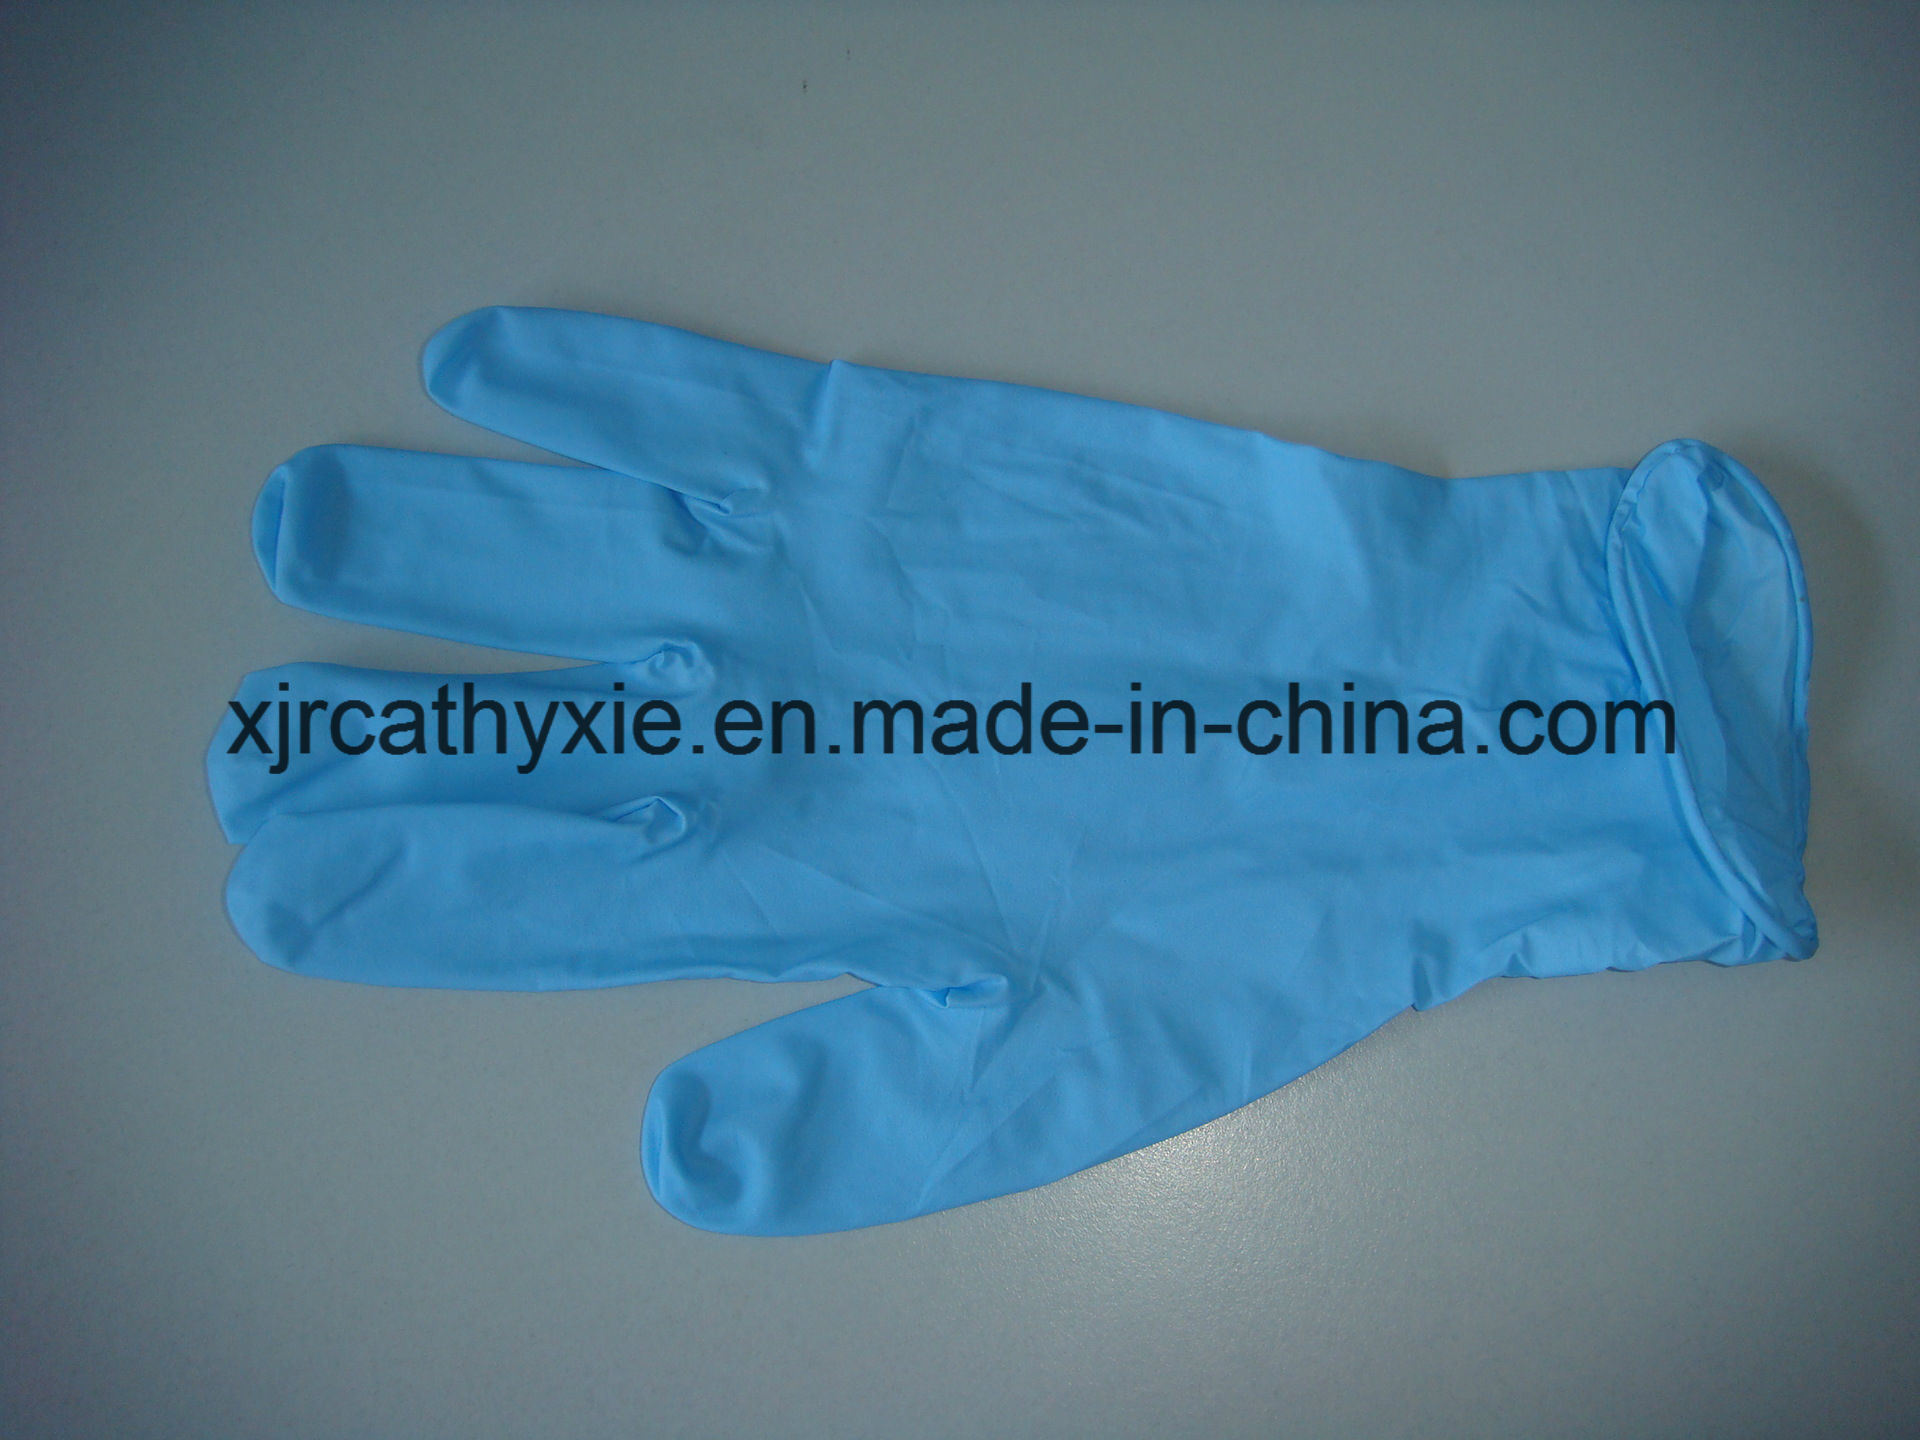 Non Sterile Disposable Nitrile Gloves (Powder Free) with Good Price